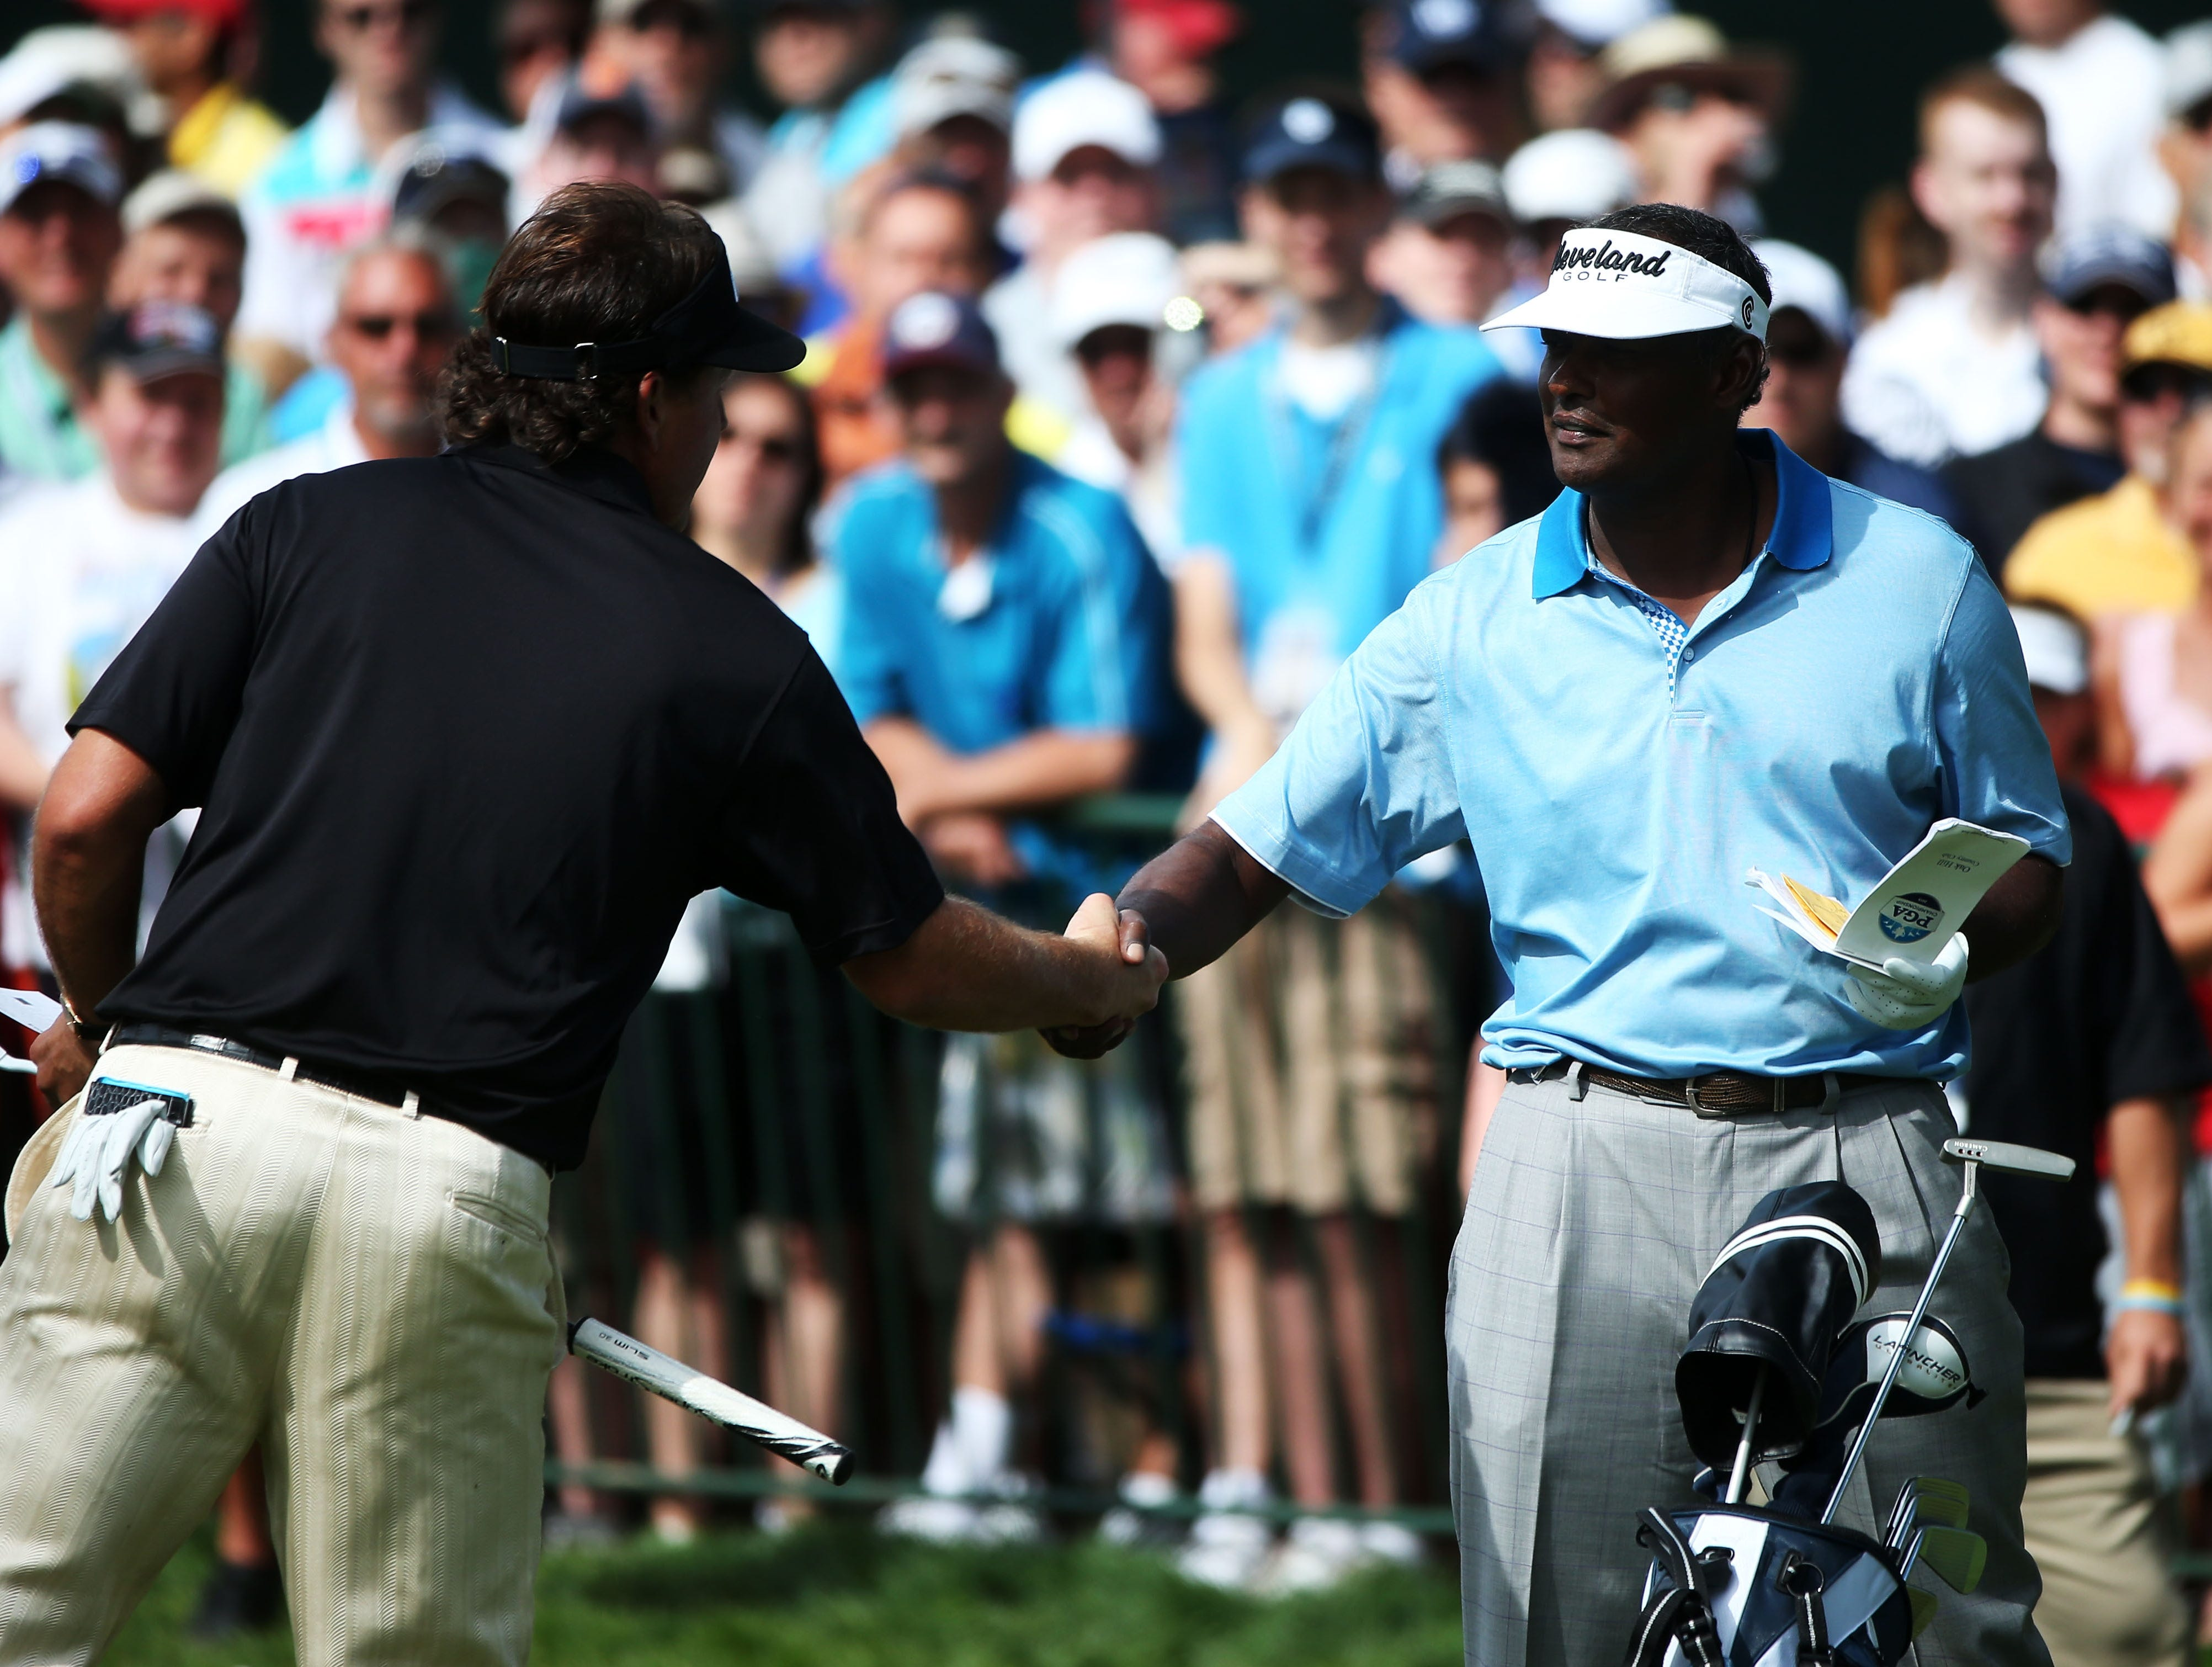 Vijay Singh (R) and Phil Mickelson (L) shake hands on the first hole.